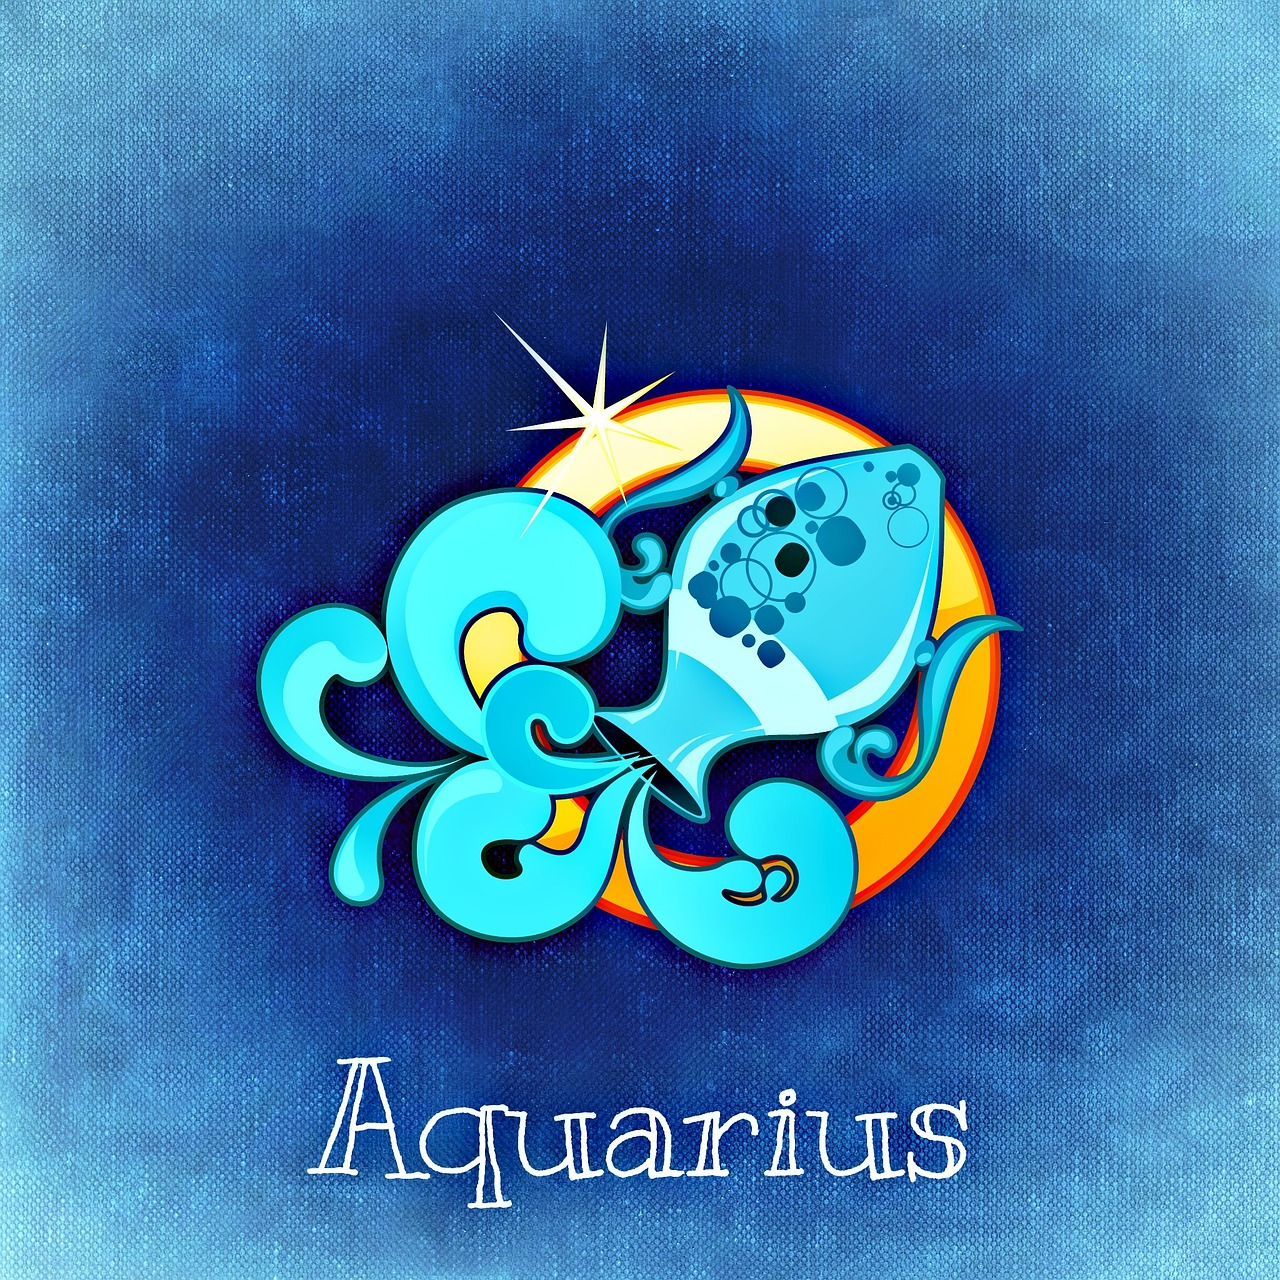 Aquarius Bedroom Decor And Accessories